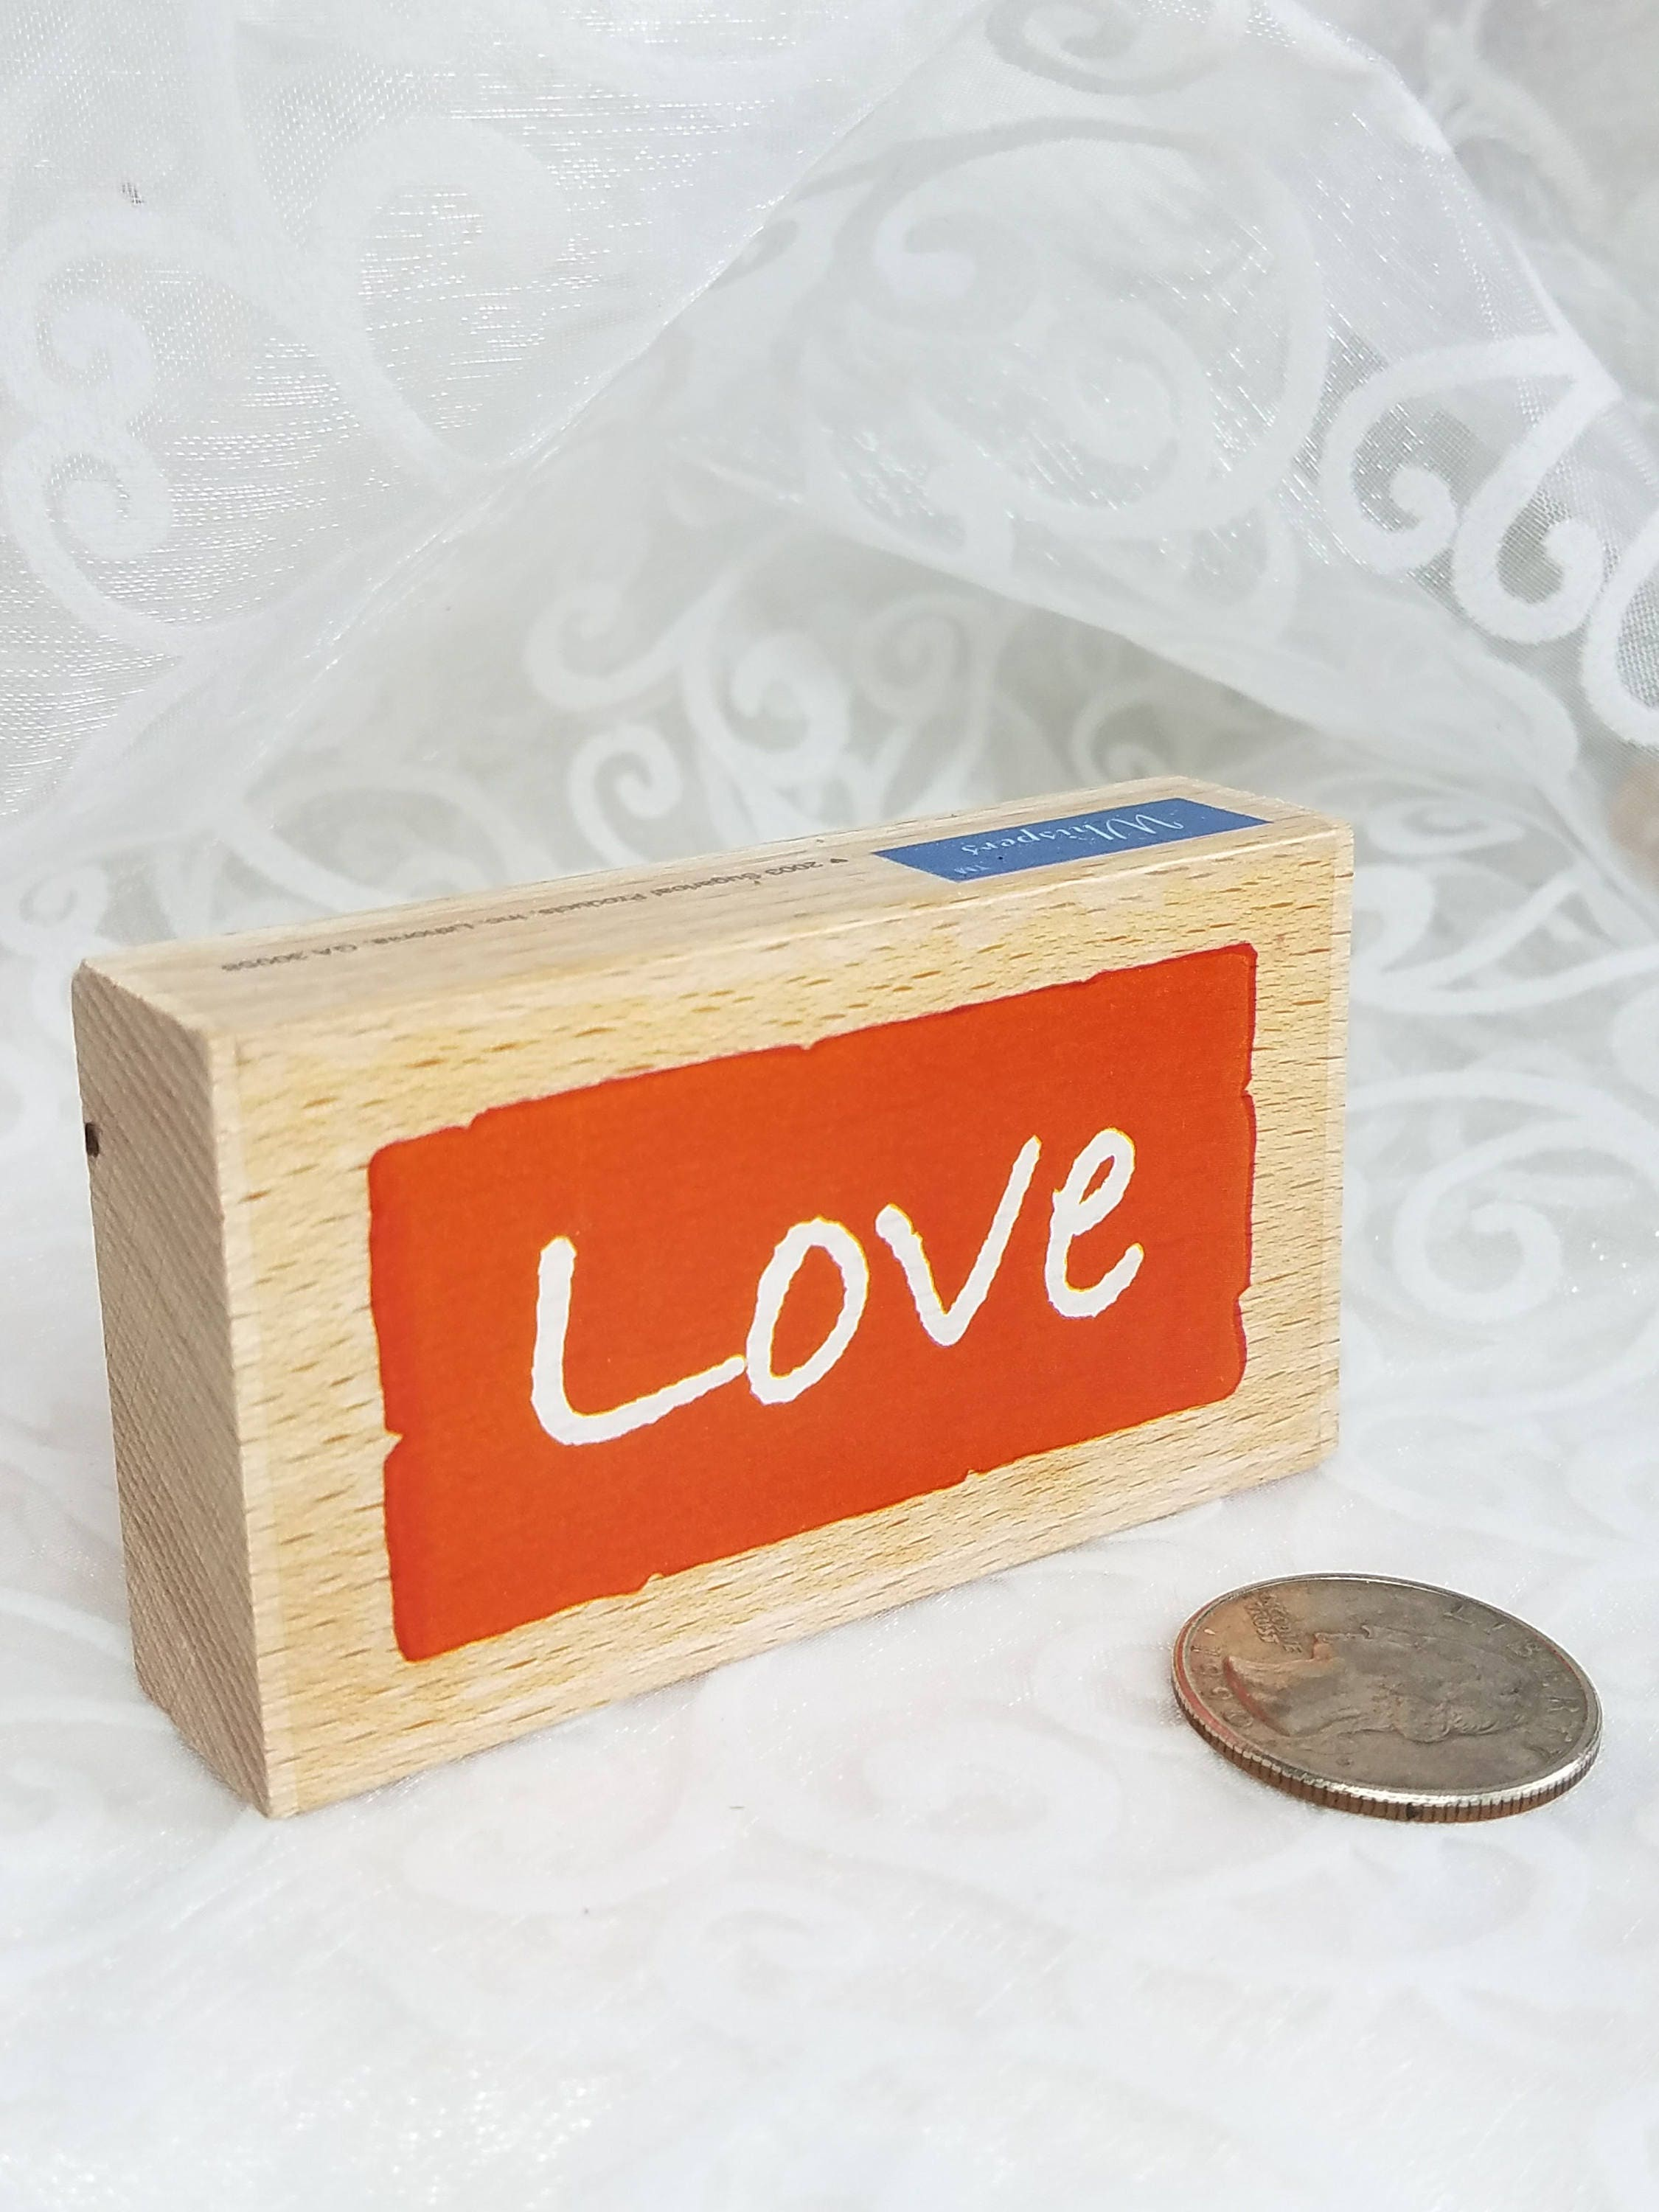 Love rubber stamp by Whispers Sugar Loaf, Craft Destash, Used rubber ...